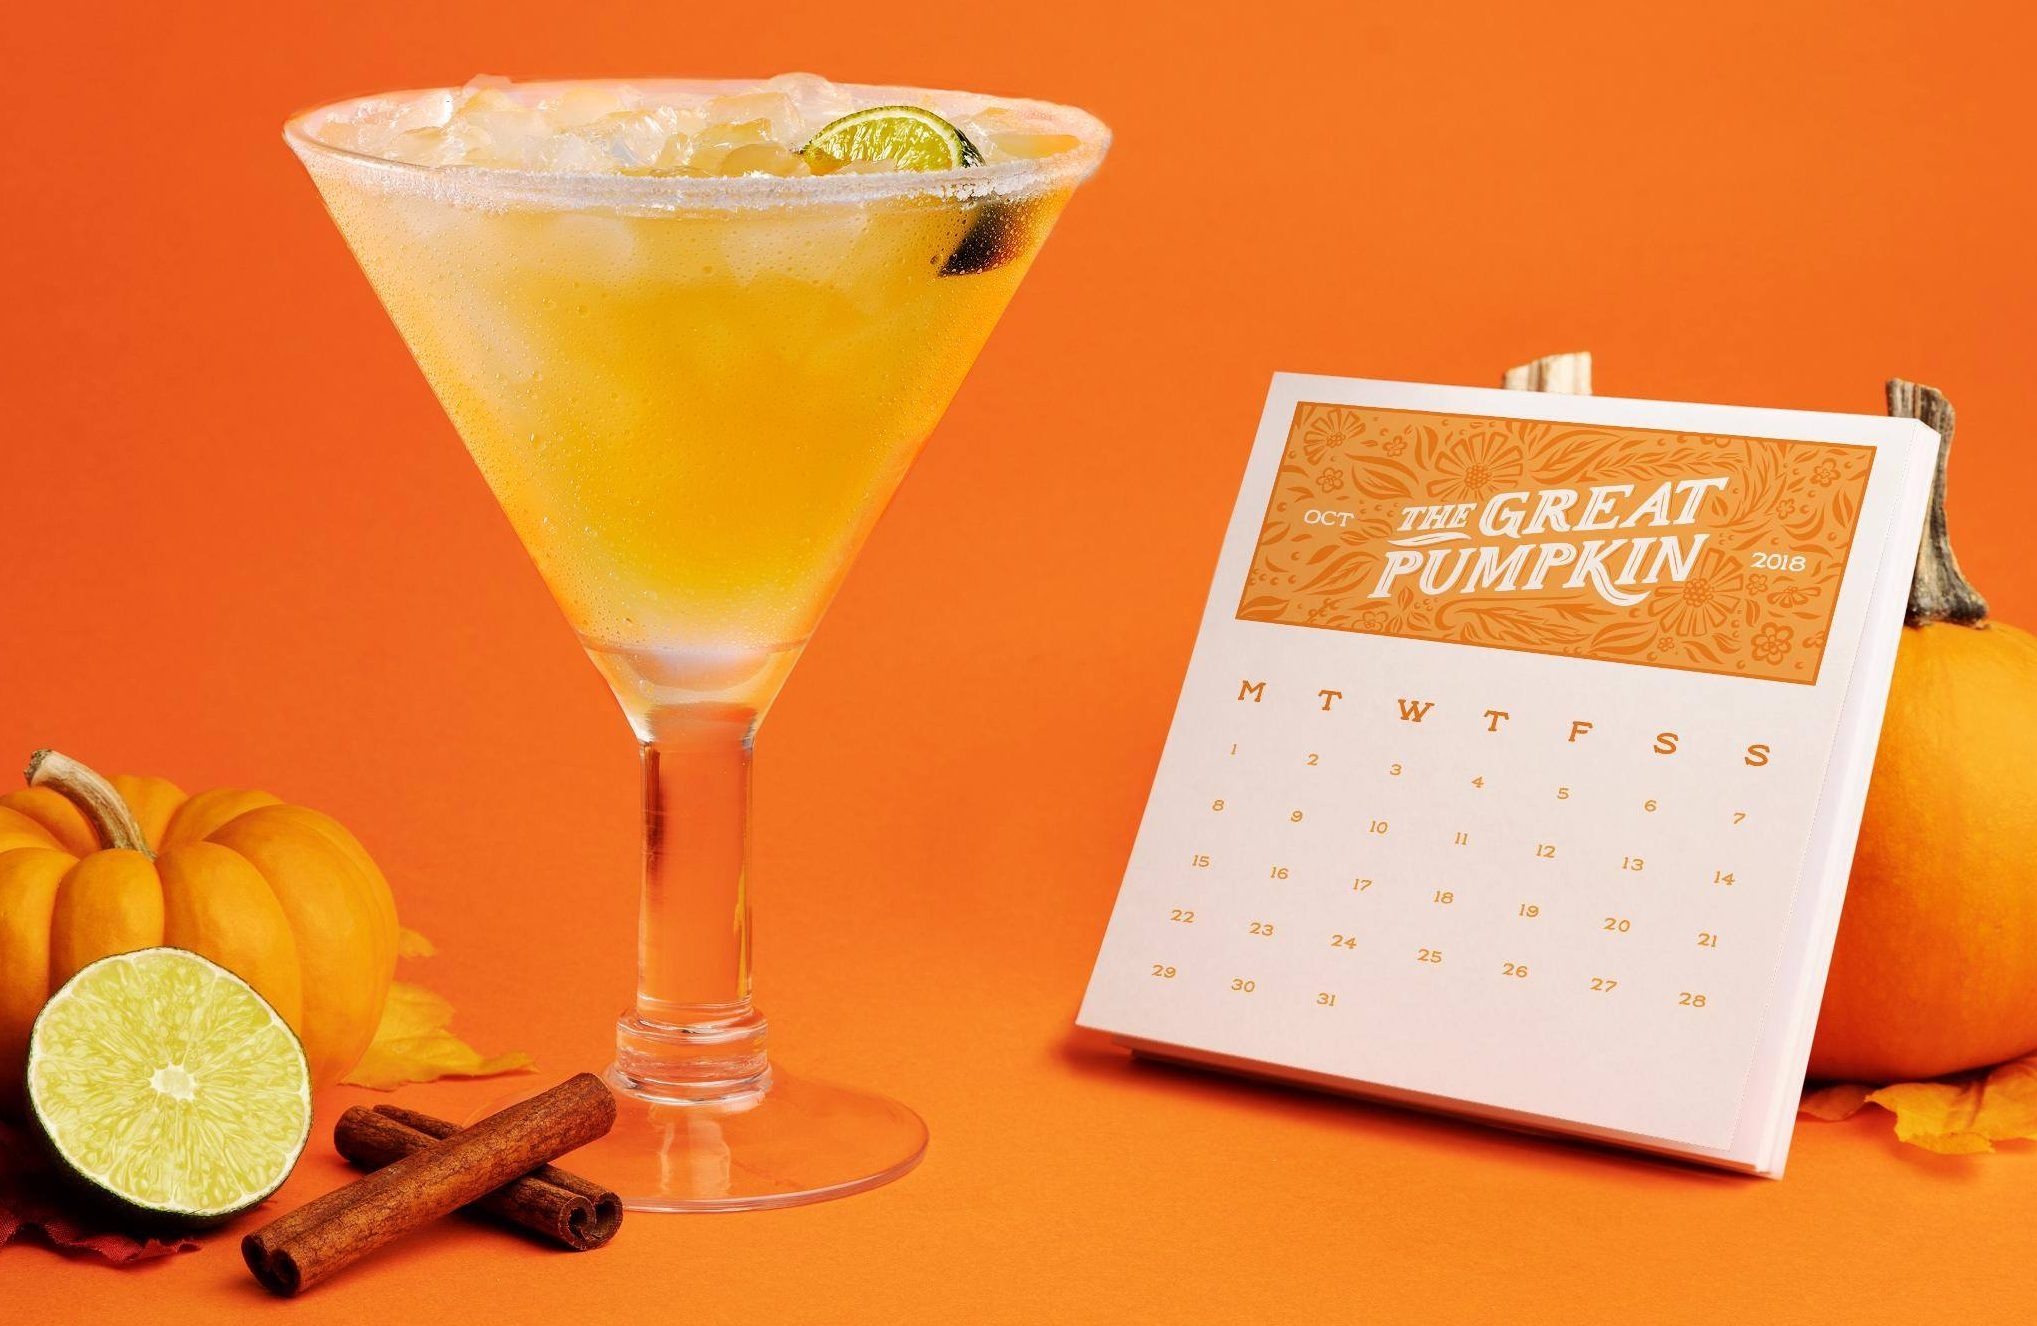 Halloween freebies and deals – Chili's Pumpkin Margarita